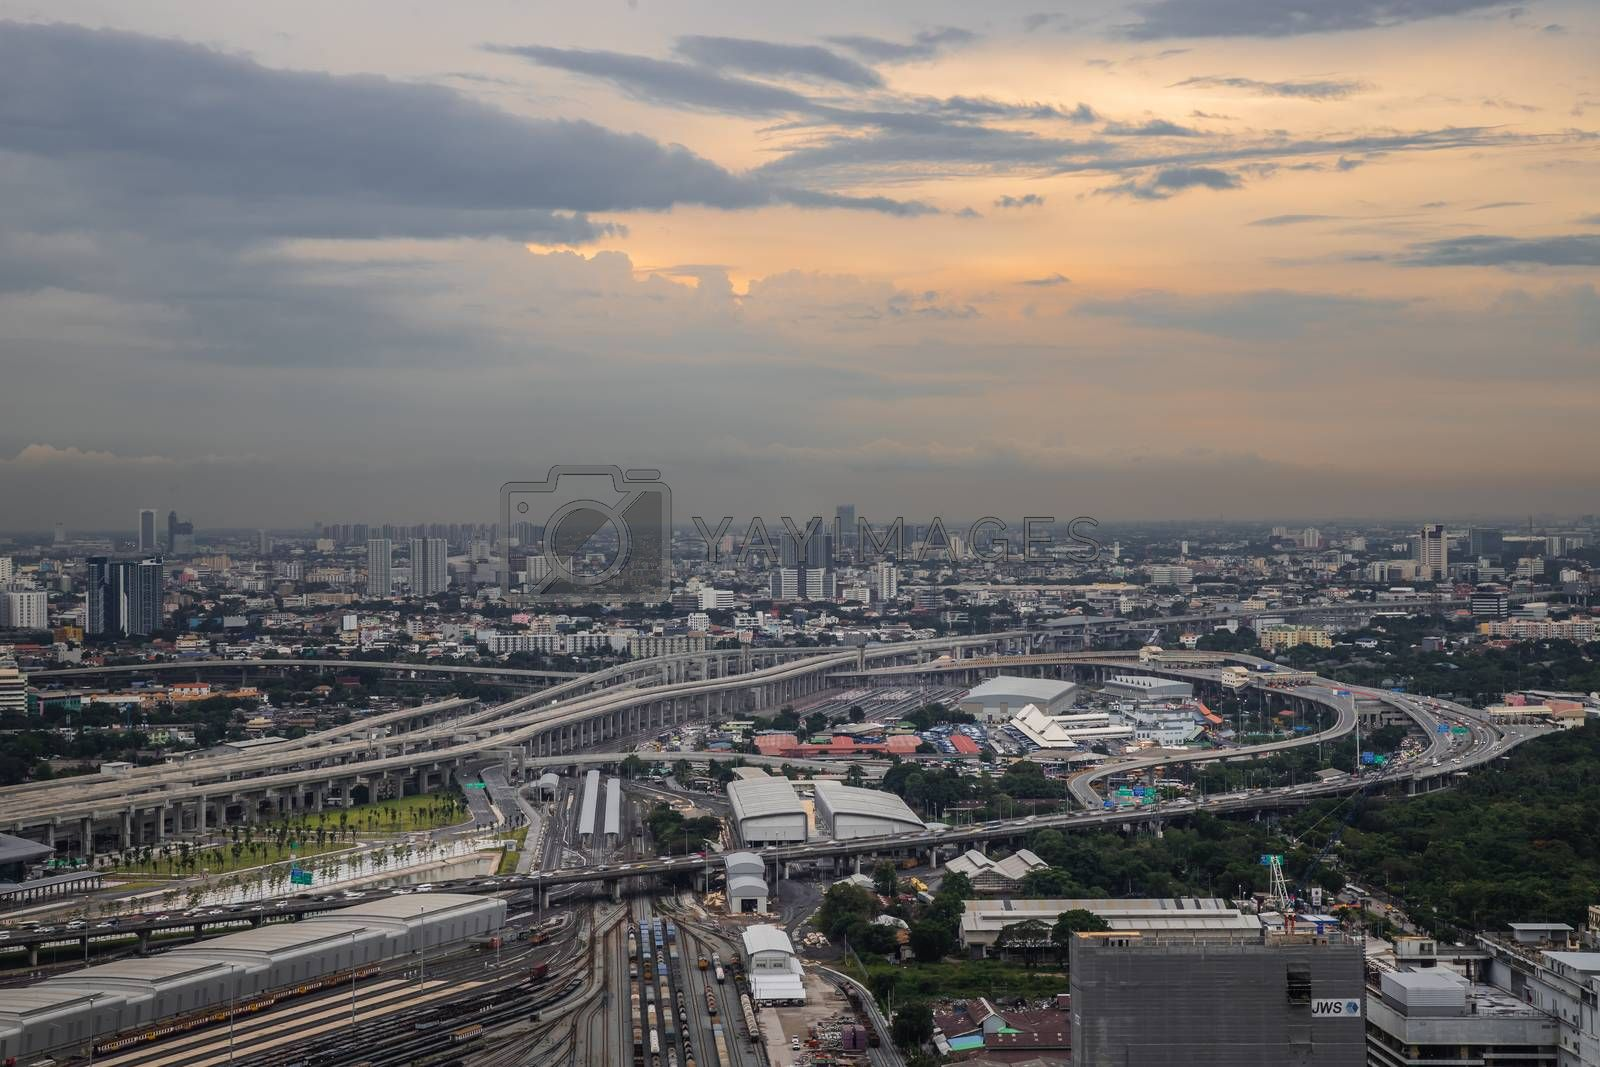 Bangkok, Thailand - Jul, 25, 2020 : Aerial view of Bang Sue central station, the new railway hub transportation building at evening. No focus, specifically.